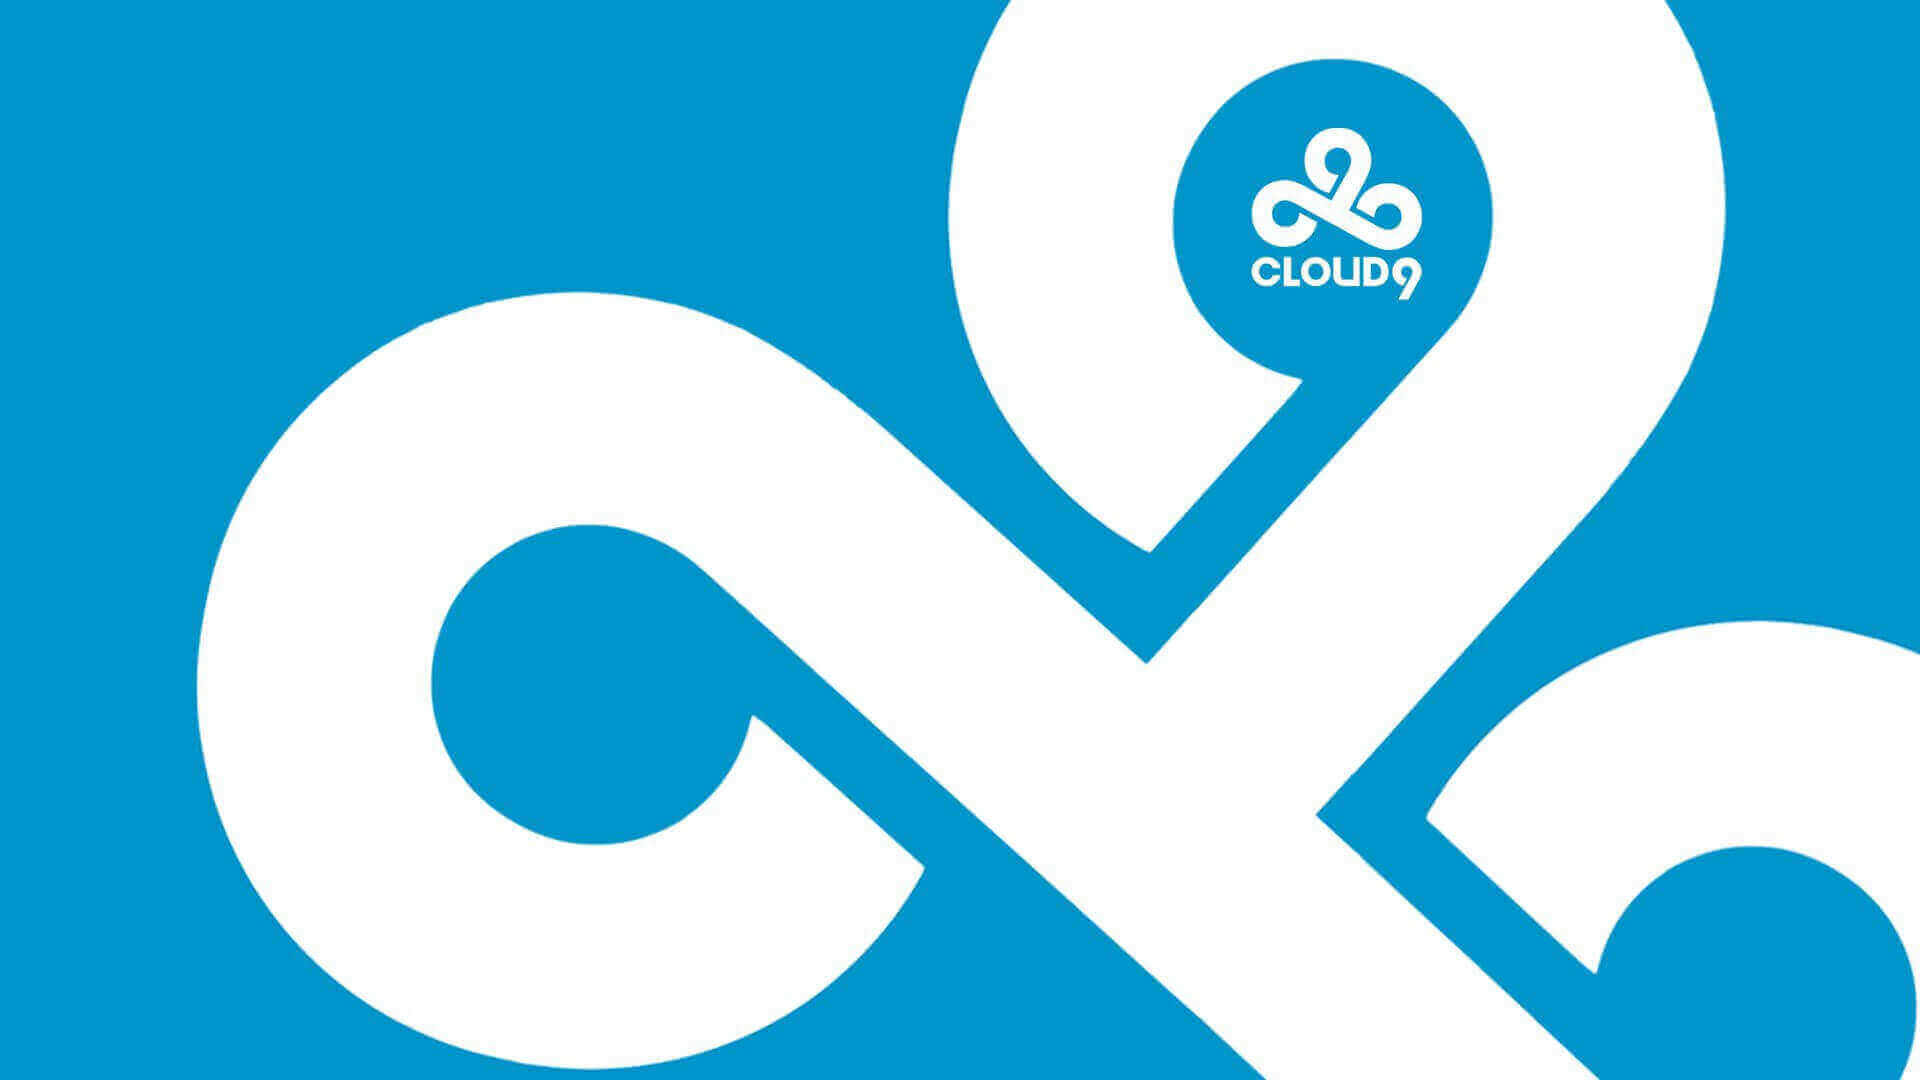 Cloud9 continue huge Fortnite investment: Avery, Nosh & more to come